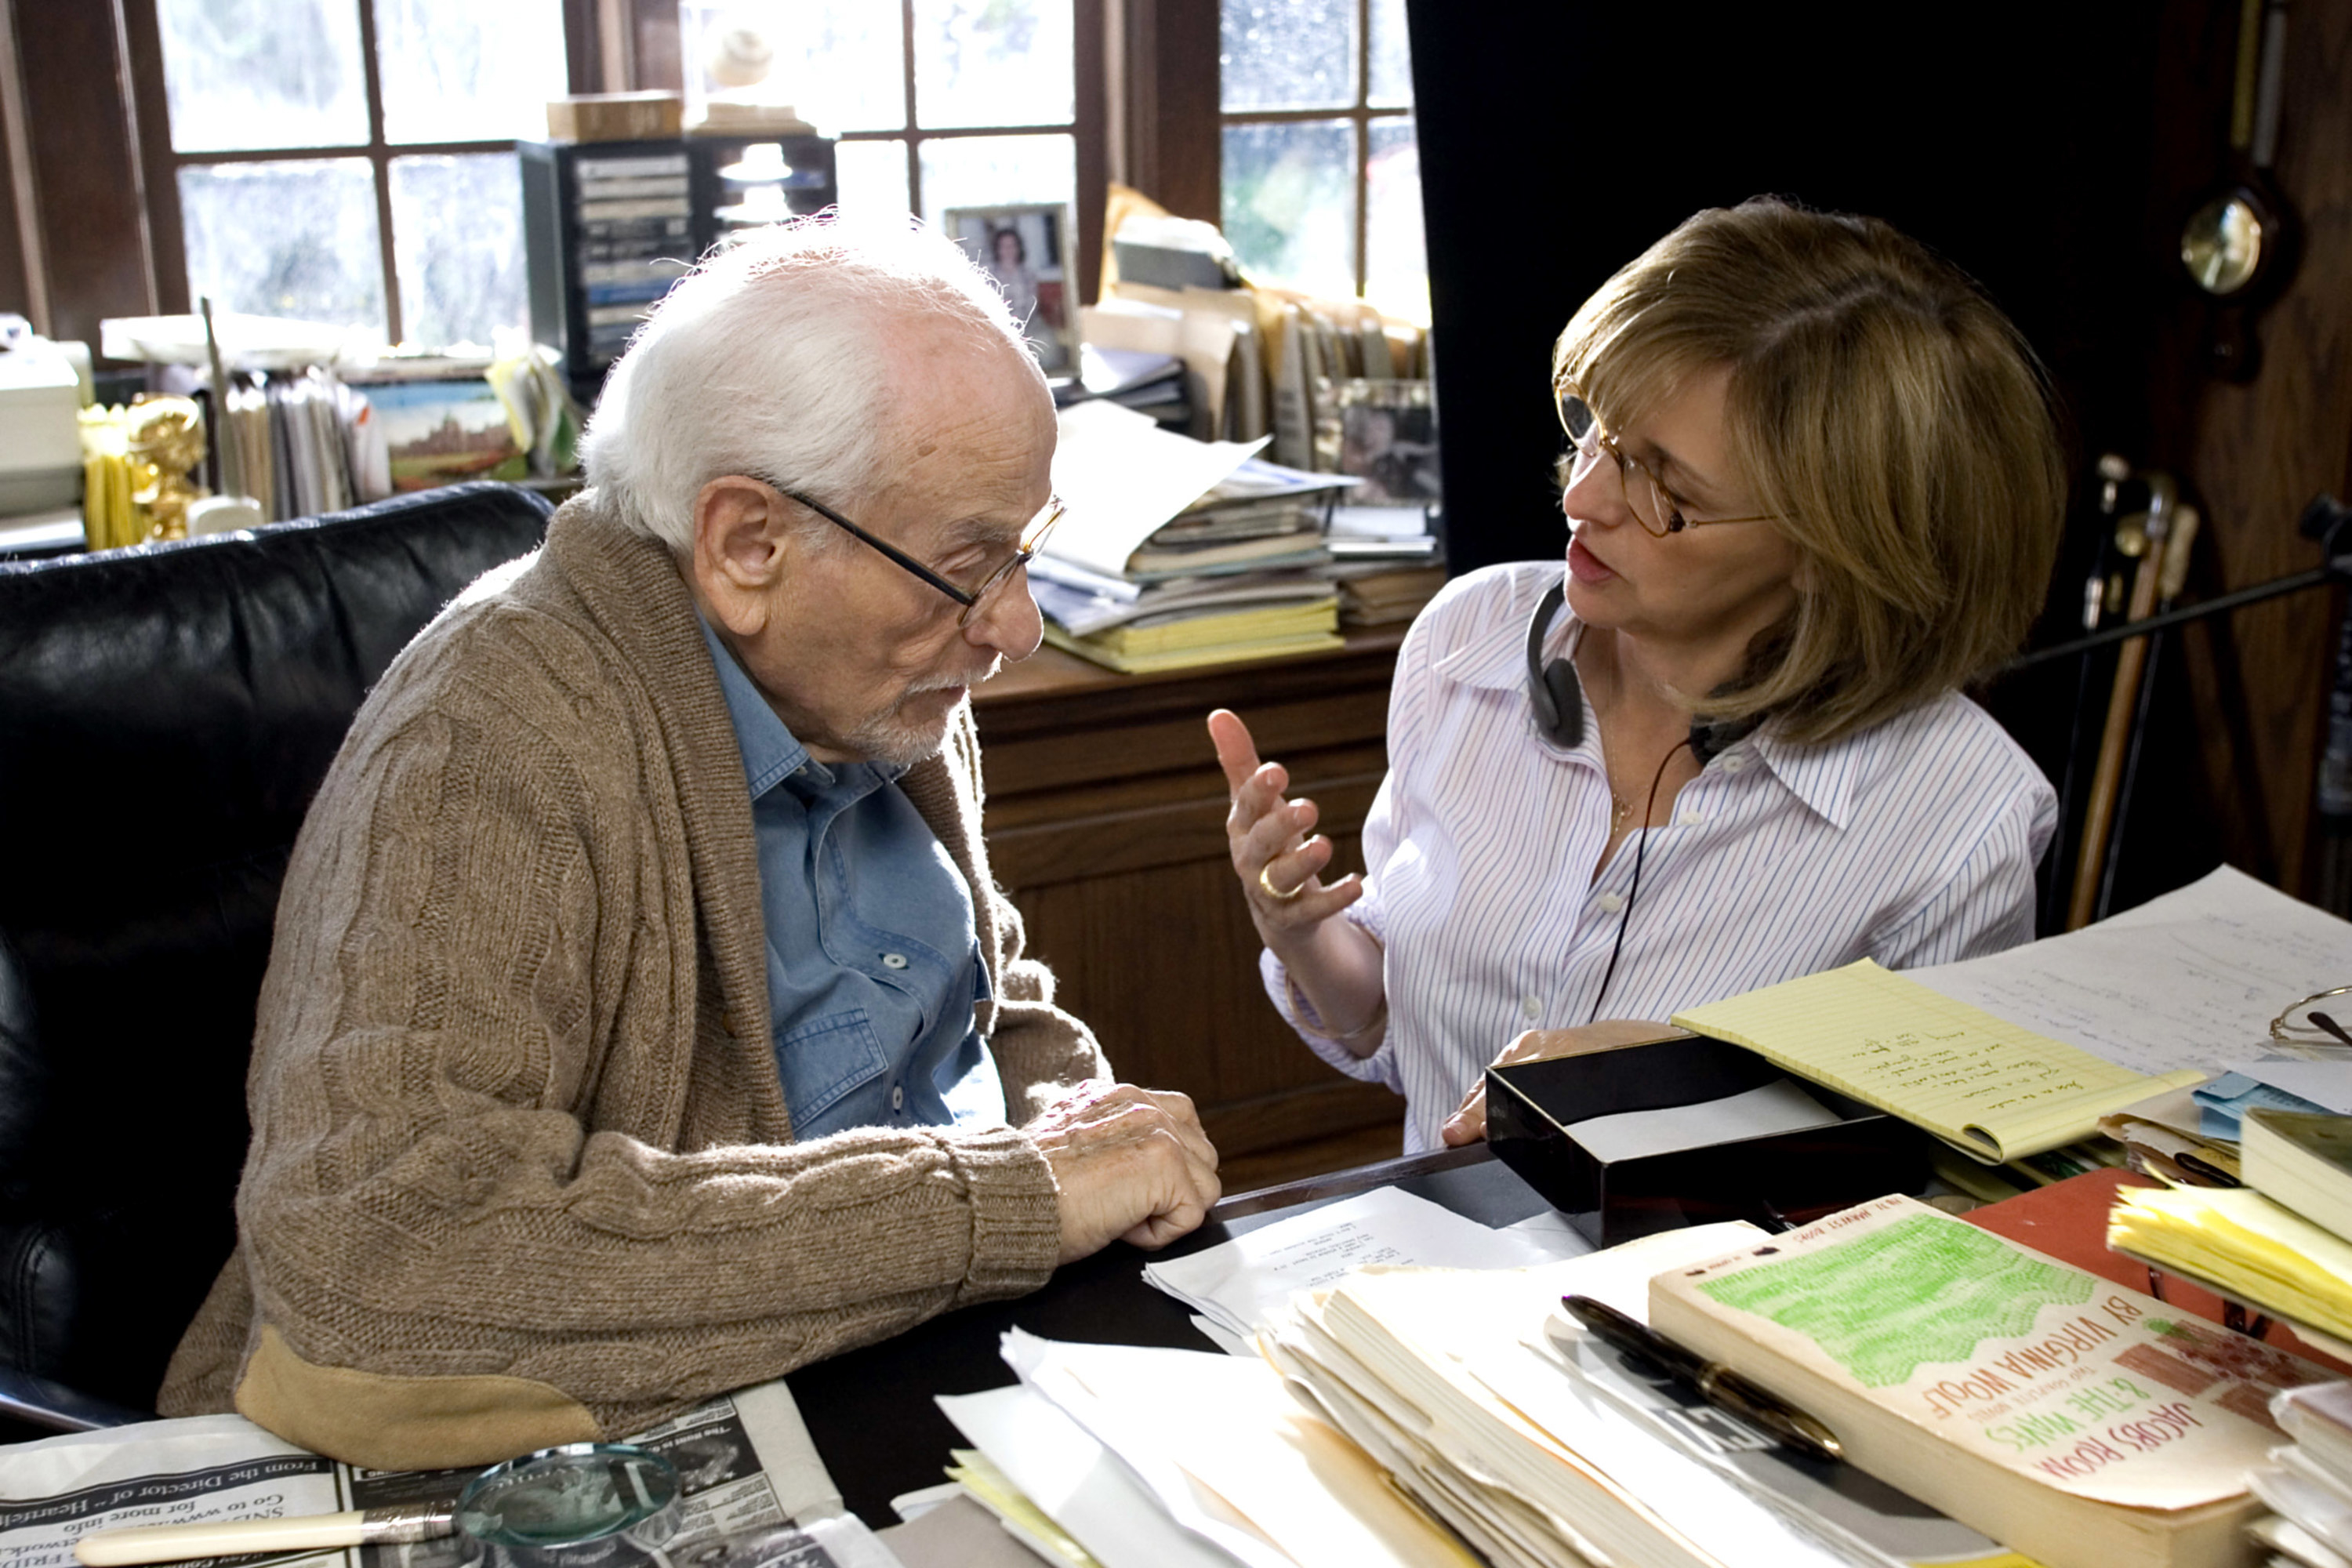 Nancy Meyers talks to Eli Wallach while seated at his desk